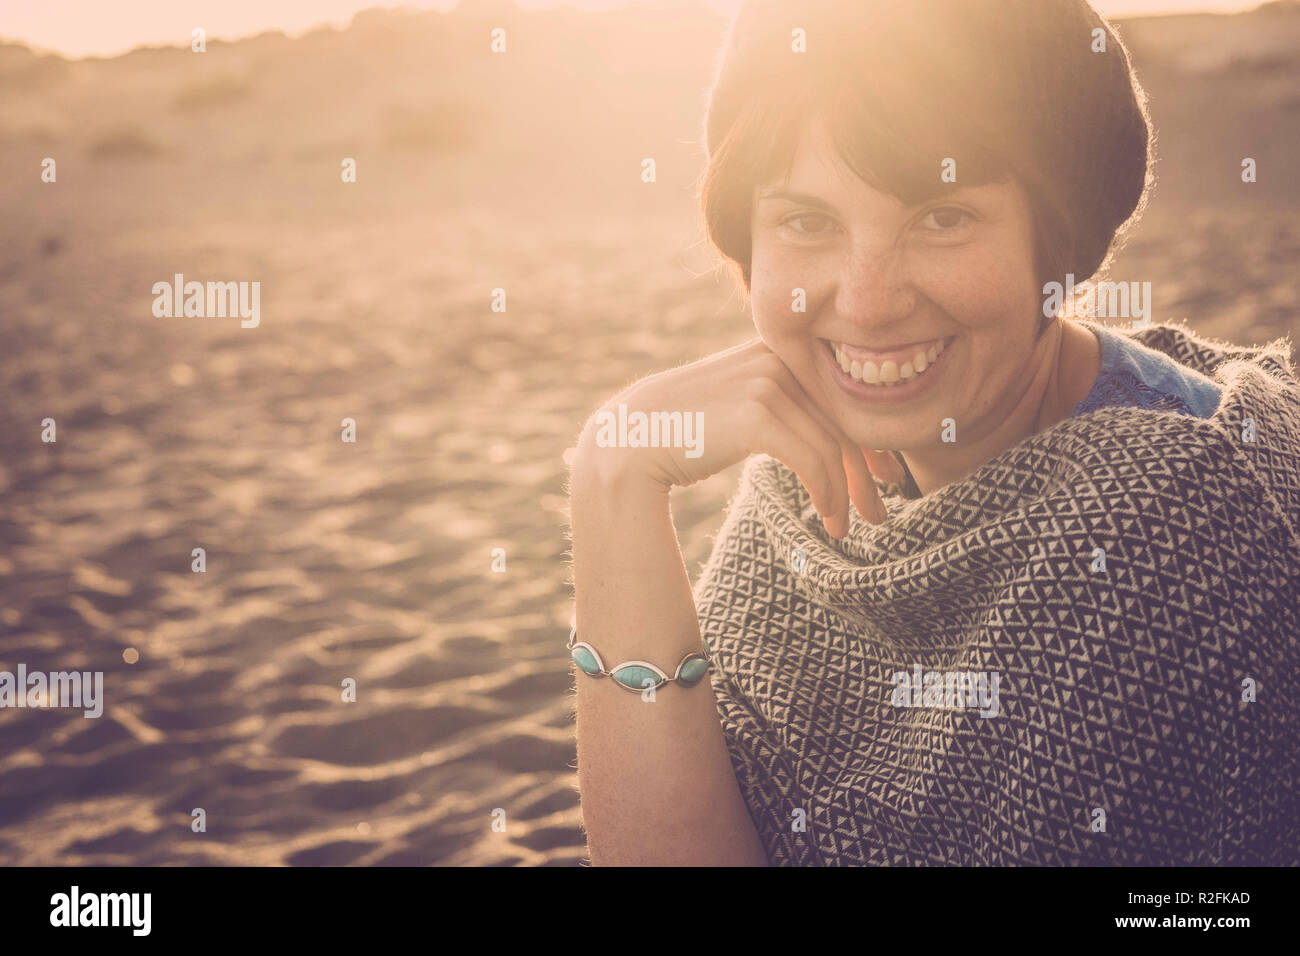 nice happy girl smile in the sunset time happy for vacation and leisure time outdoor. one person happiness travel concept with beach on the background - Stock Image